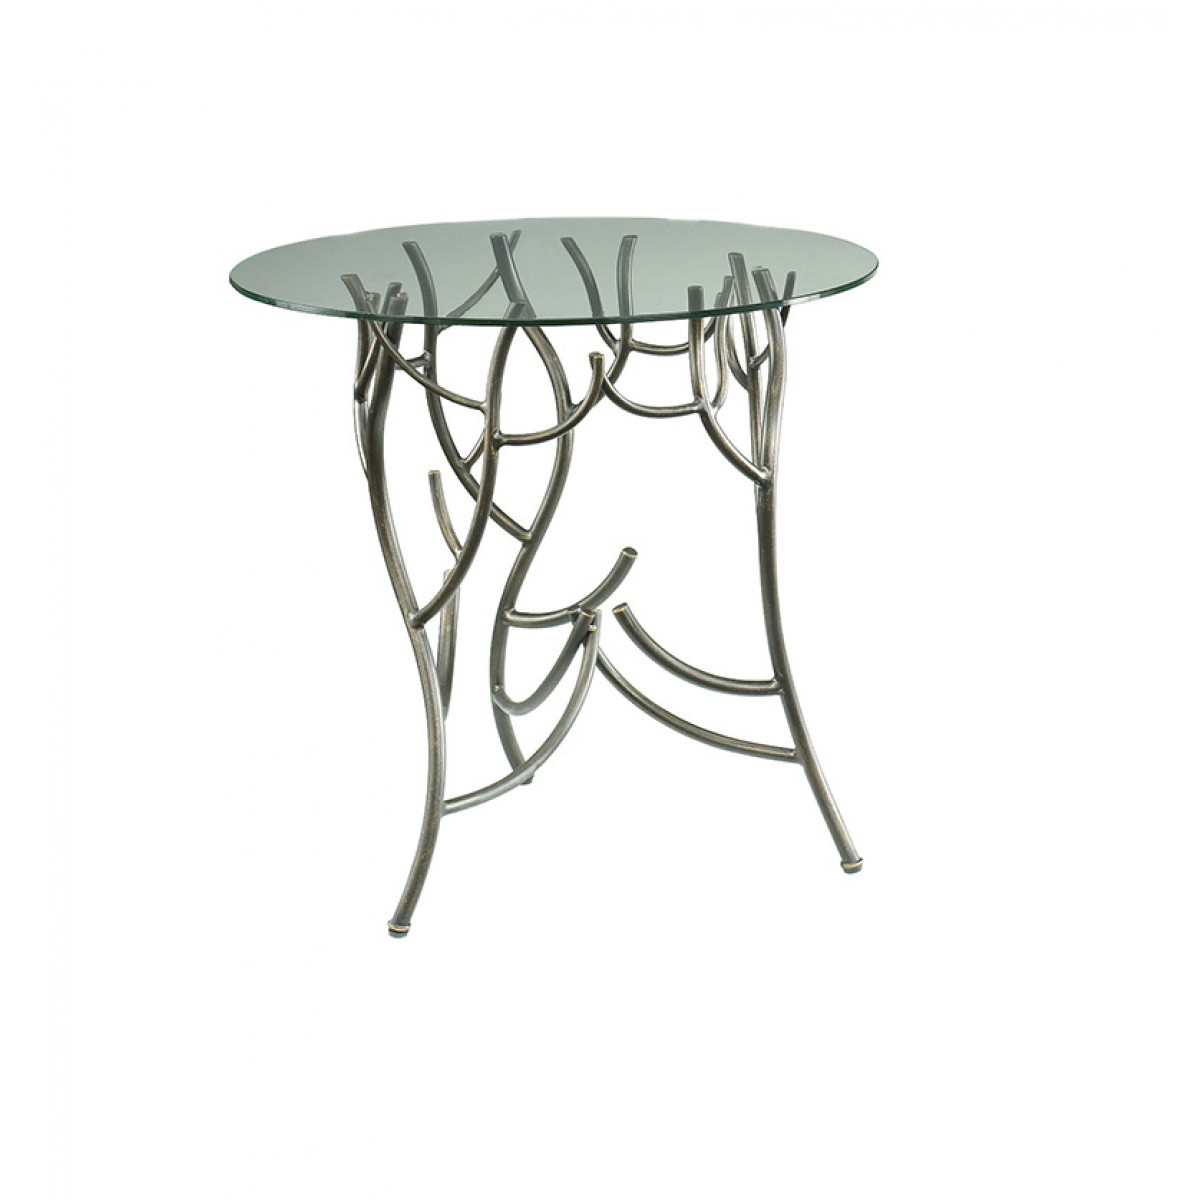 hammary hidden treasures twig accent table base outdoor nic tables side height white cloth napkins foot sofa stackable brown living room furniture contemporary coffee wine rack